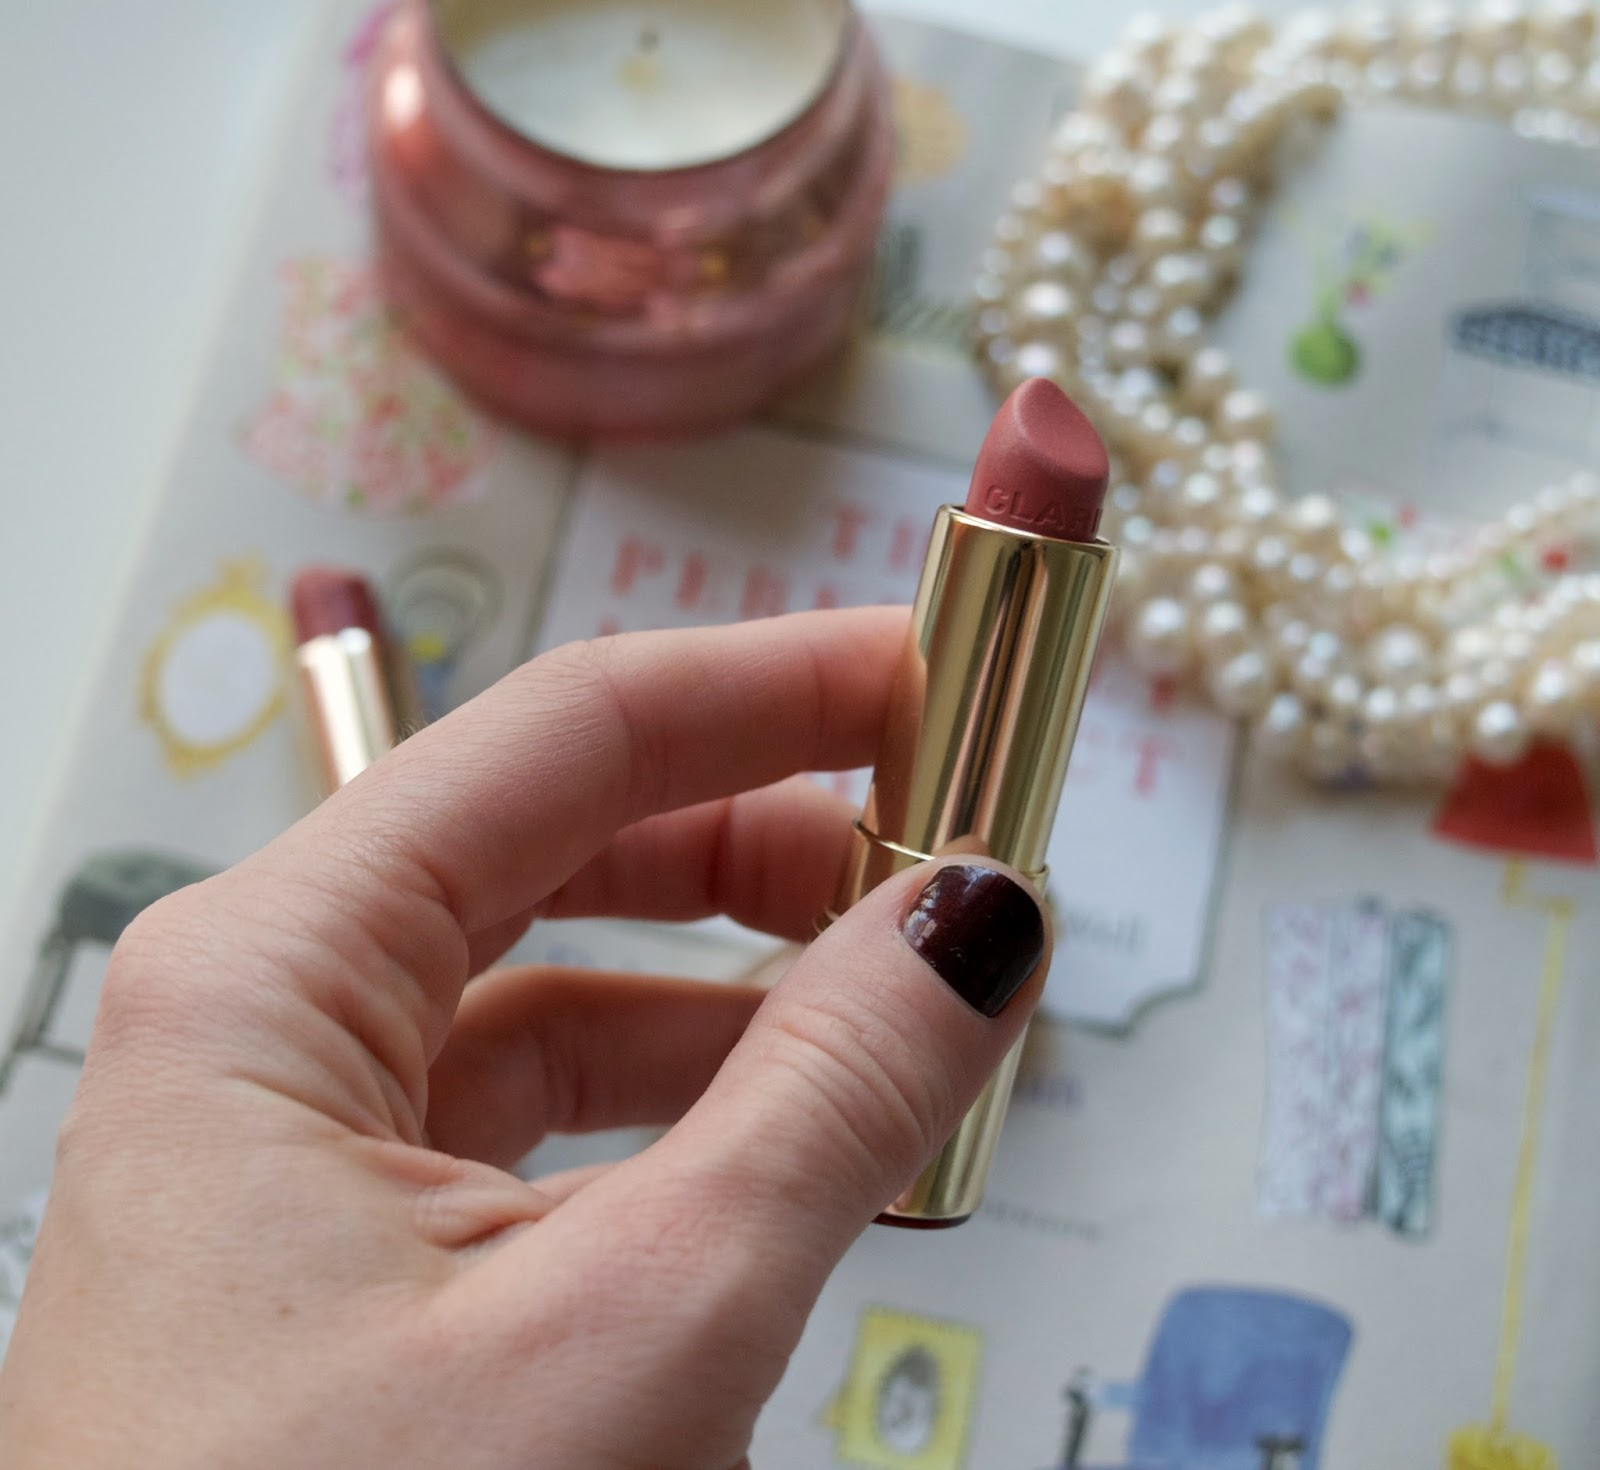 clarins lipstick - clarins joli rouge lipstick - neutral winter lipstick - tea rose - soft berry